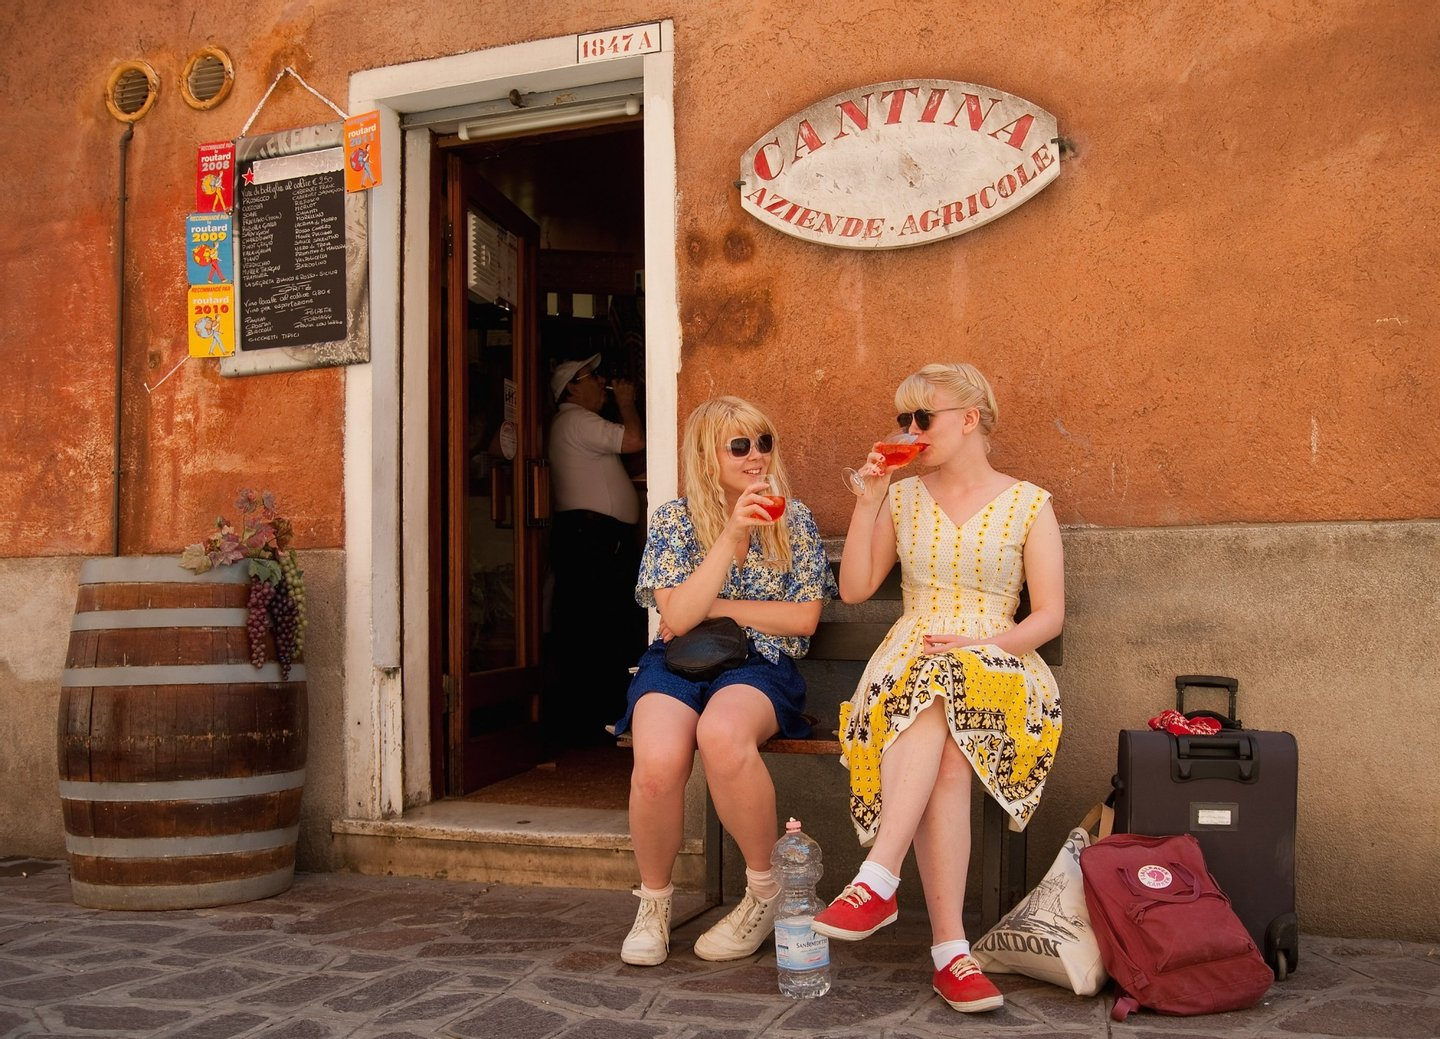 VENICE, ITALY - JUNE 17:  Two tourists enjoy a Spritz (a powerful mixture of white wine, Campari and soda water) in front of a traditiona bacaro on June 17, 2011 in Venice, Italy. The bacari are the local down to earth version of wine bars which serve 'ciccheti, a kind of Tapas traditionally washed down with a glass of wine, and Venetians stop to snack and socialize before and after meals. (Photo by Marco Secchi/Getty Images)